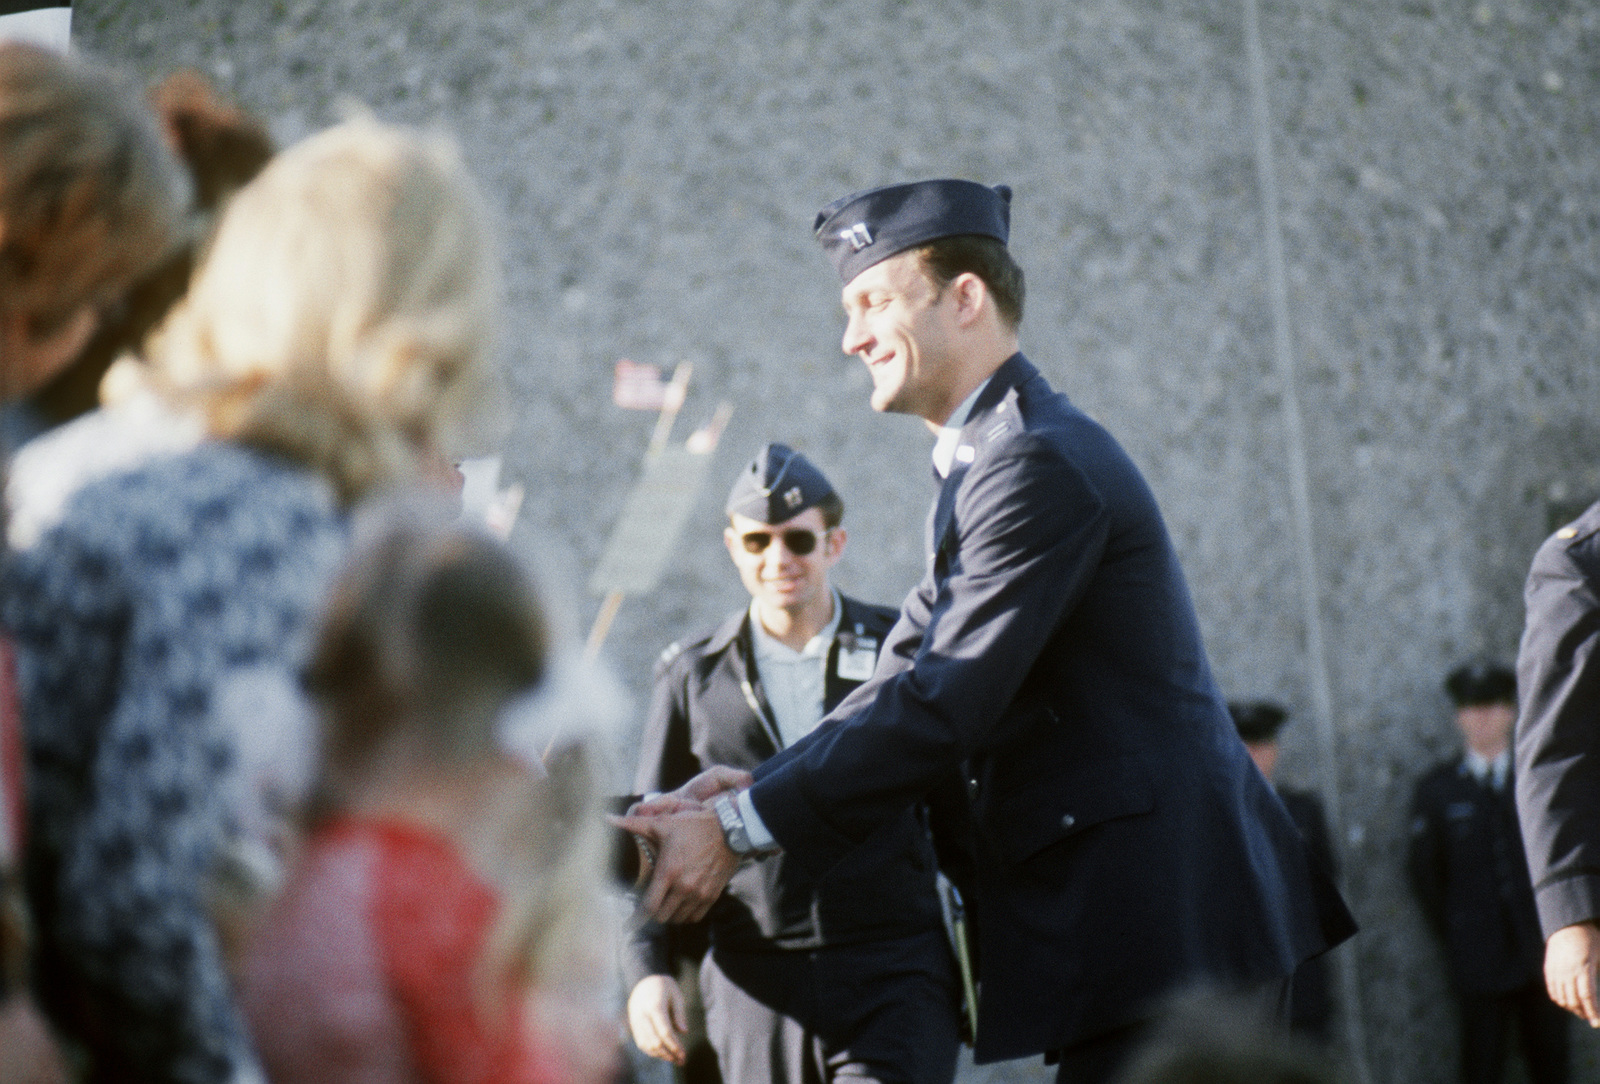 Former POW and U.S. Air Force CPT Edward John Mechenbier is greeted by the crowd of well wishers after his arrival from Clark Air Base, Philippines. CPT Mechenbier was captured on 14 Jun 67 and released by the North Vietnamese in Hanoi on 18 Feb 73